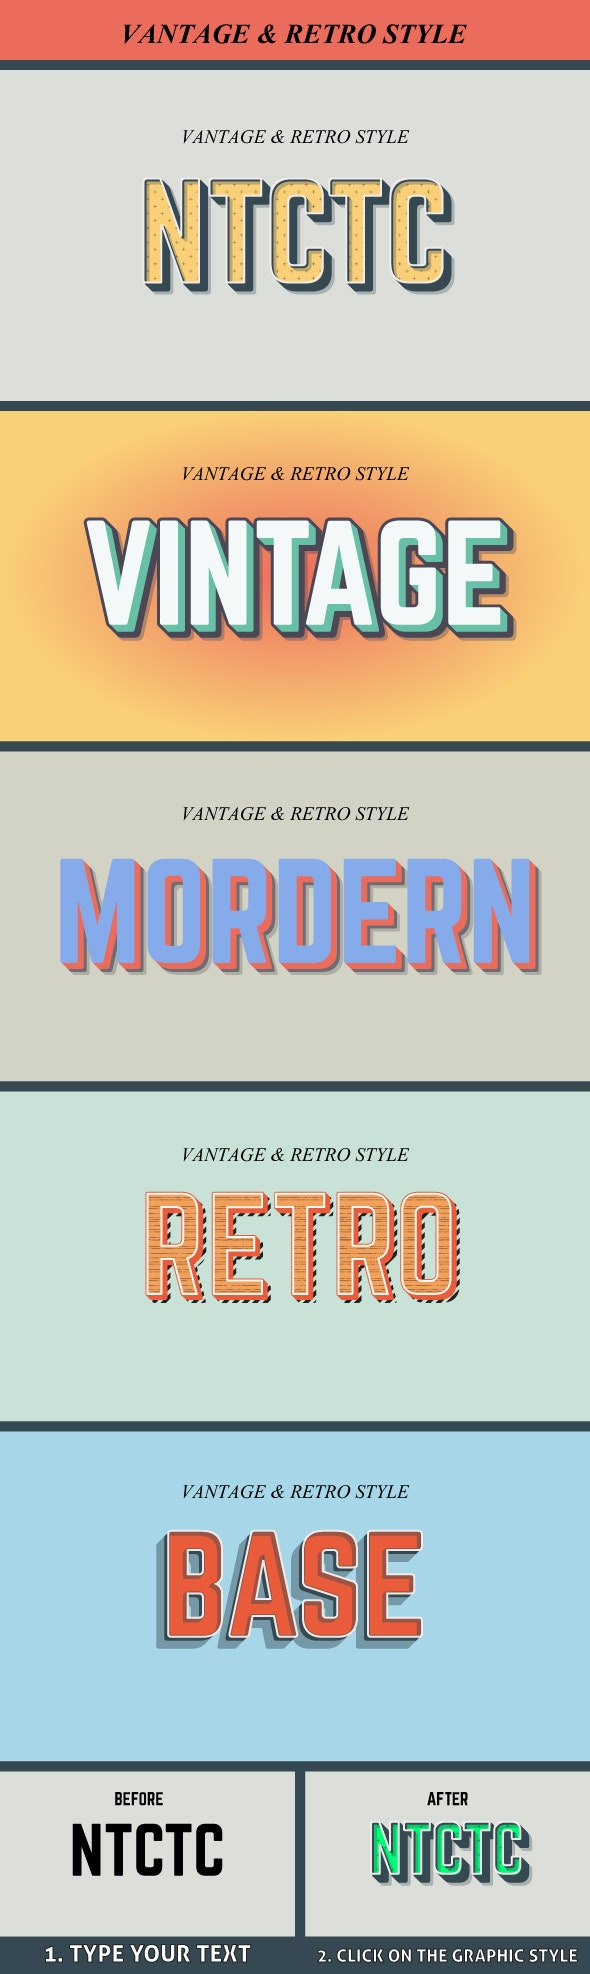 Vintage and Retro Graphic Style - Styles Illustrator